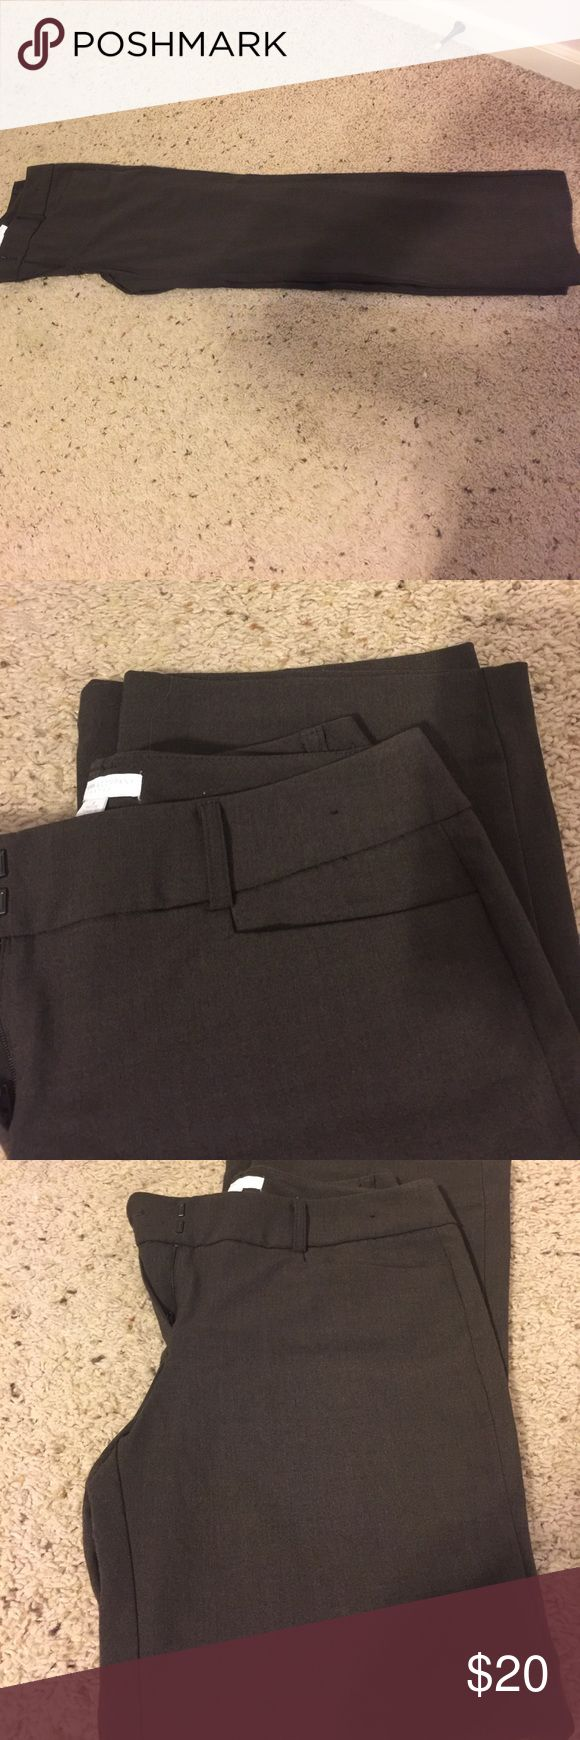 Dress Pants New York and Co dark grey dress pants. Size 8 Petite Excellent condition New York & Company Pants Trousers